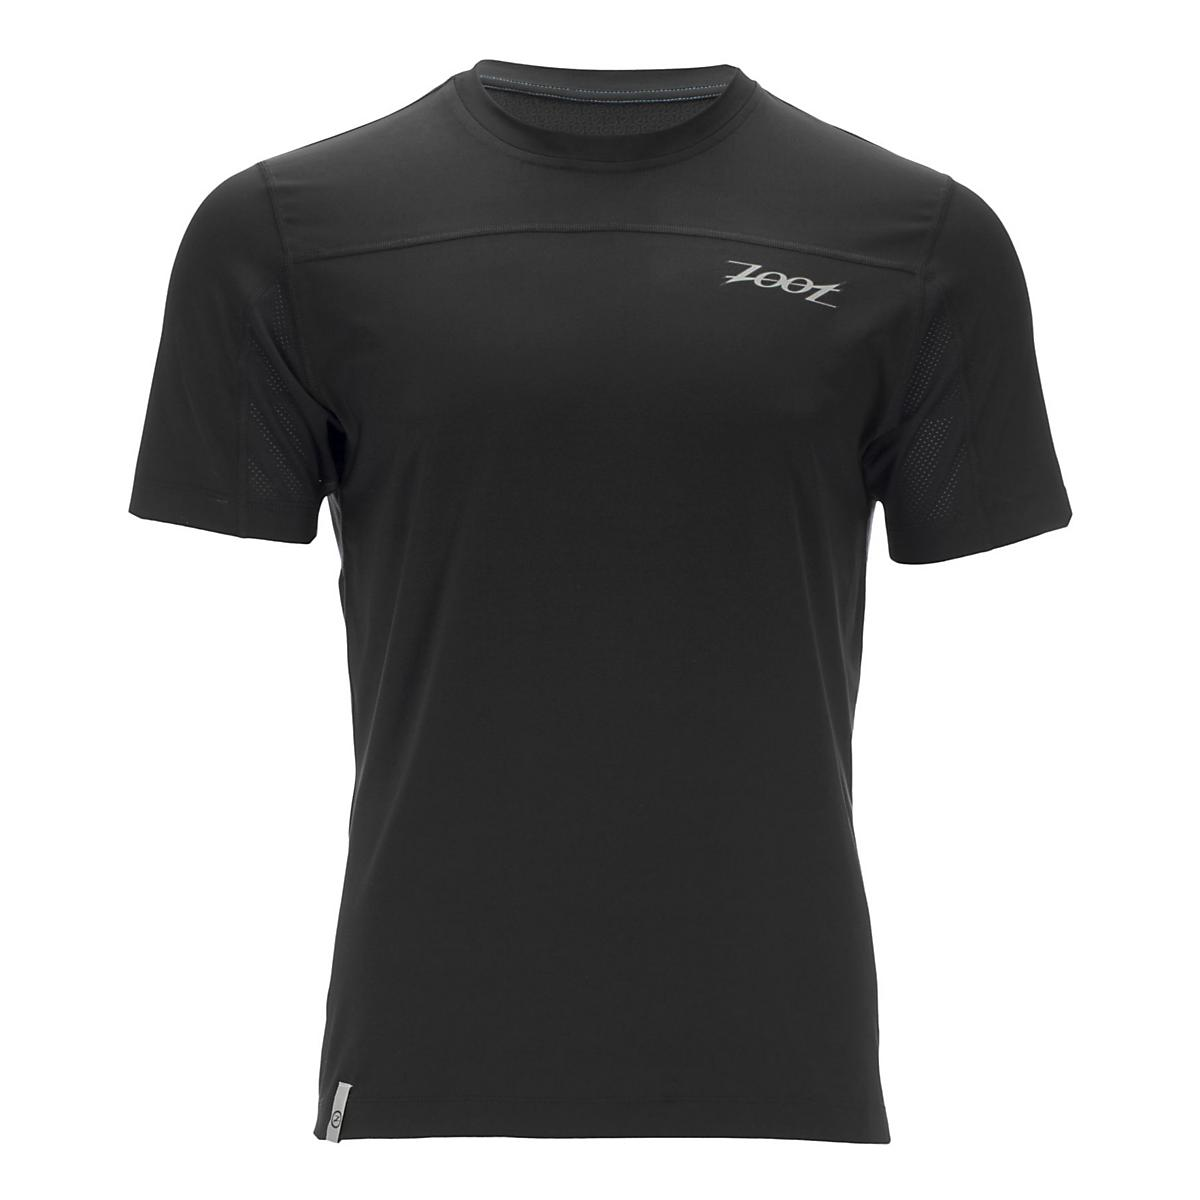 Men's Zoot�Chill Out Tee